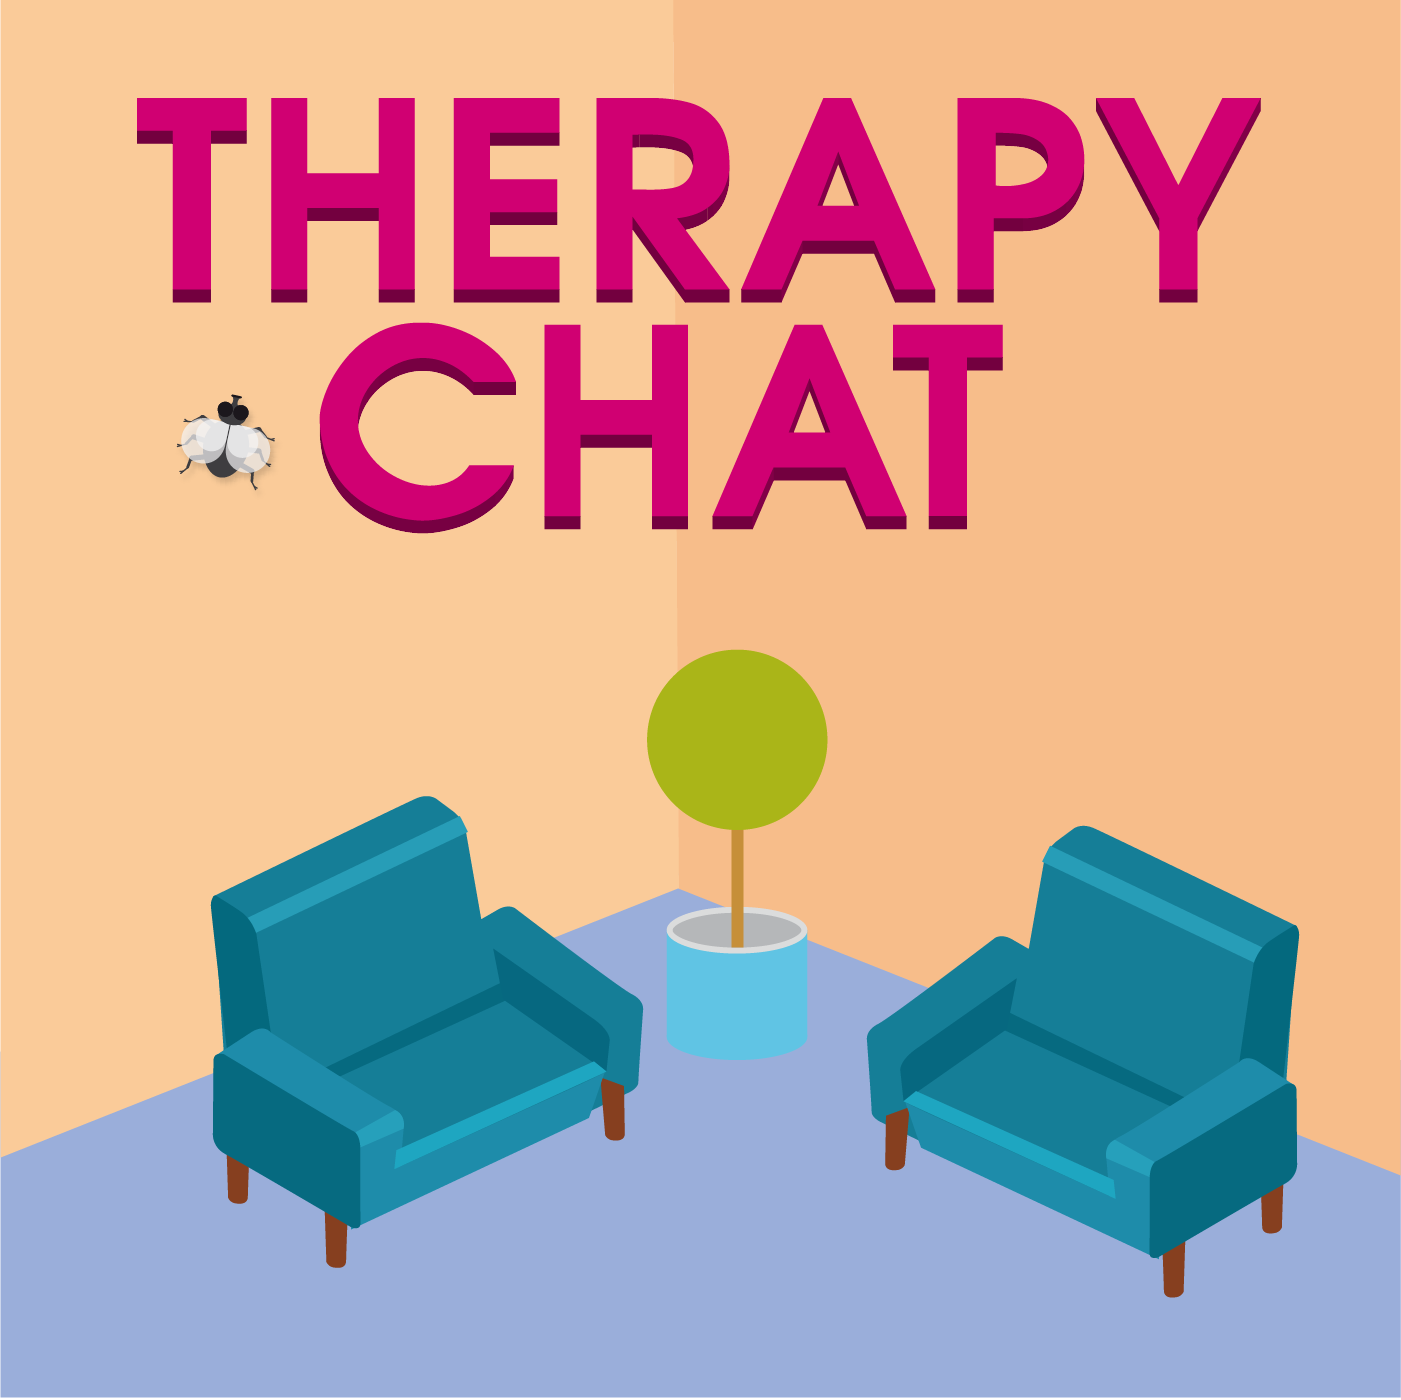 Click on the image above to listen to past episodes of Therapy Chat! You can also visit iTunes to leave a rating and review, and subscribe to Therapy Chat so you can get the newest episodes delivered as soon as they're published!